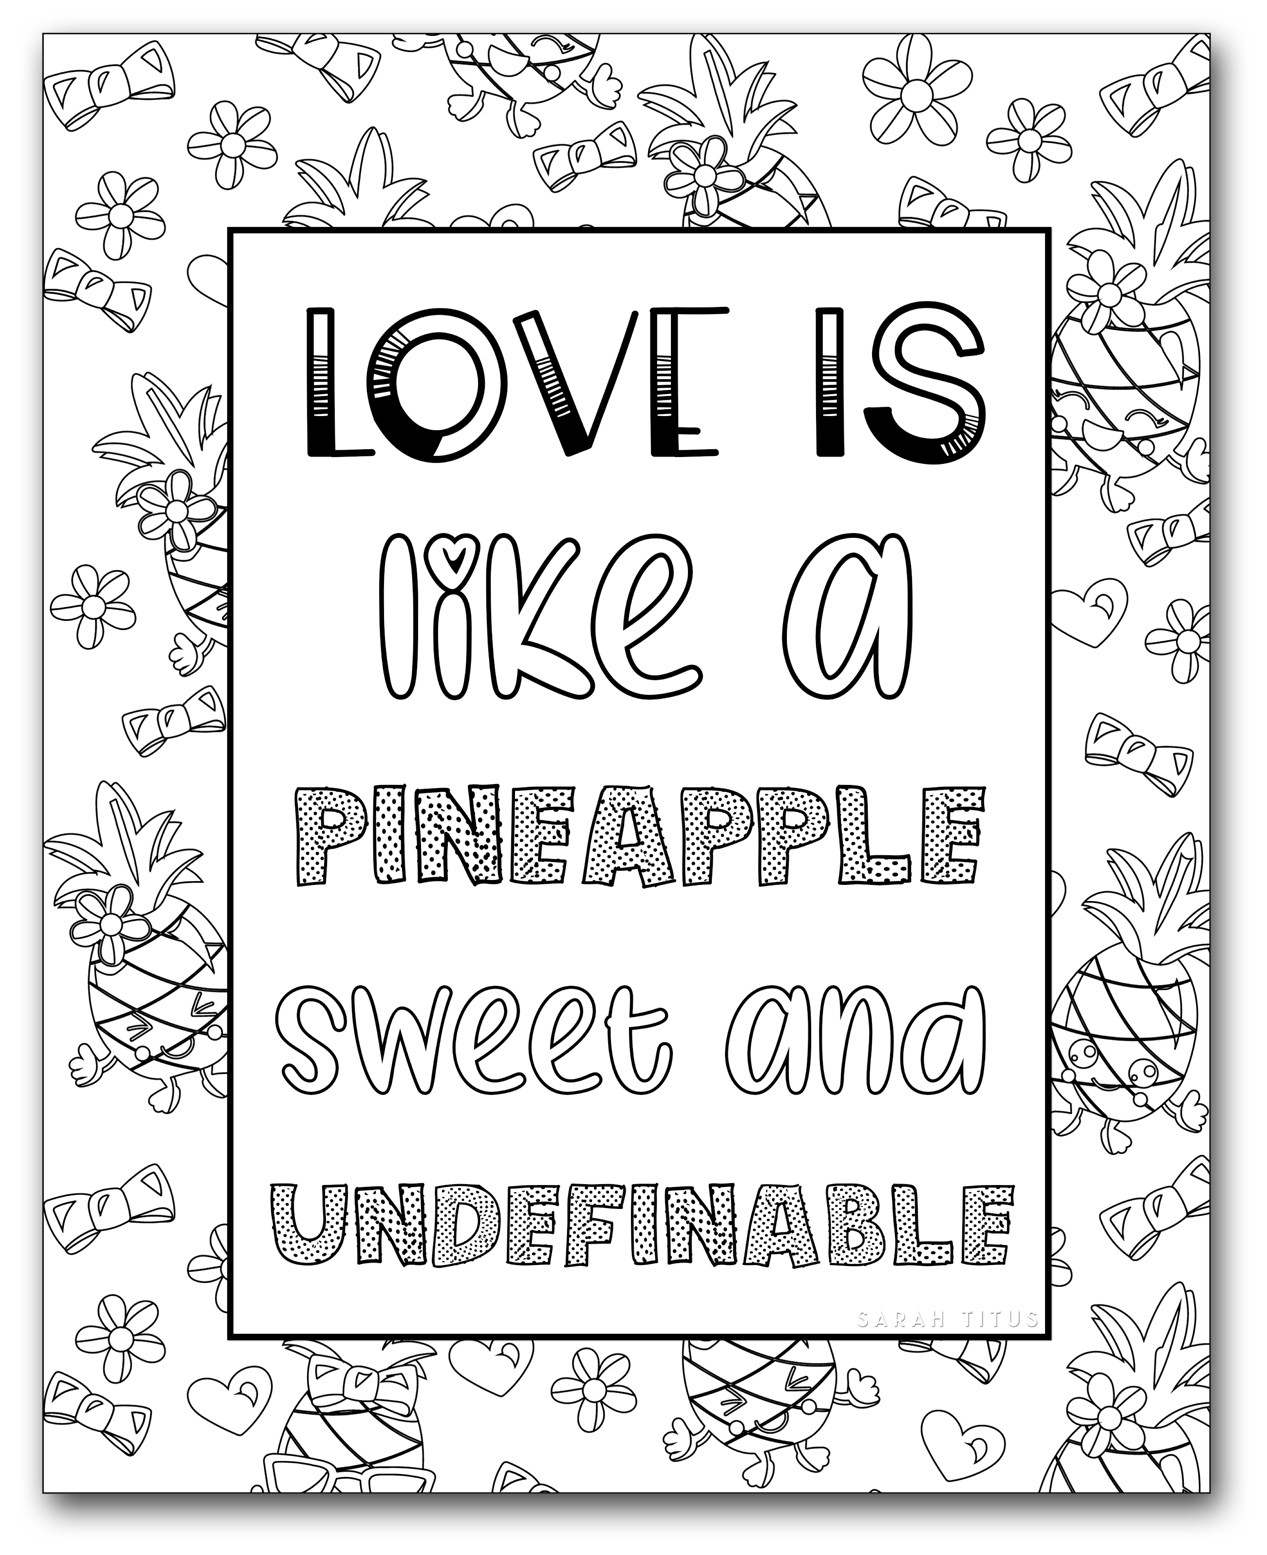 Best ideas about Printable Coloring Sheets For Girls . Save or Pin Printable Coloring Pages for Girls Sarah Titus Now.